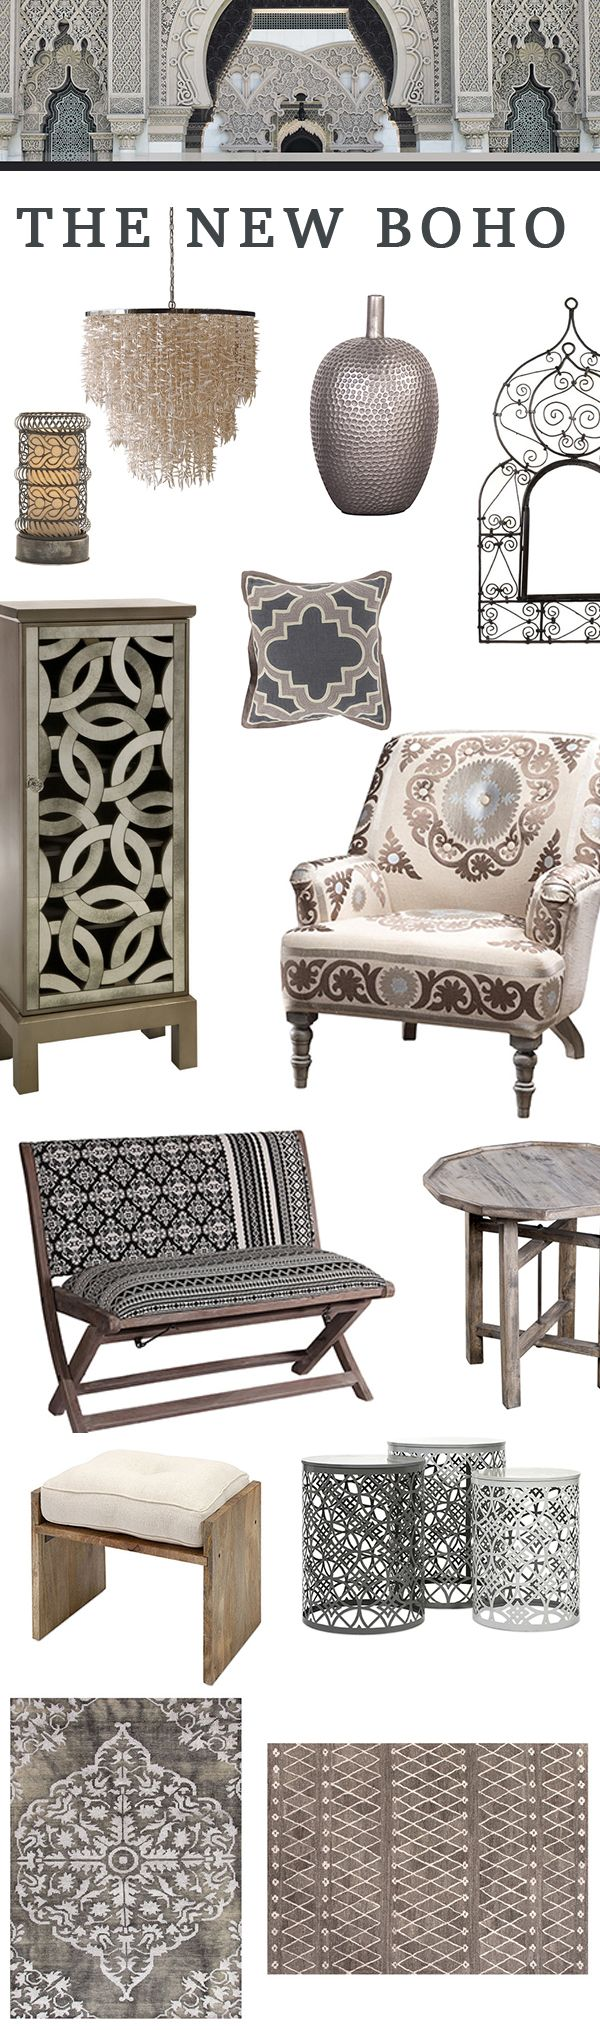 #Boho Luxe - Throw all of your previous notions of boho out the window. This elegant take on the aesthetic is changing everything. Inspired by Moroccan palaces and their Arabesque archways ----- ==